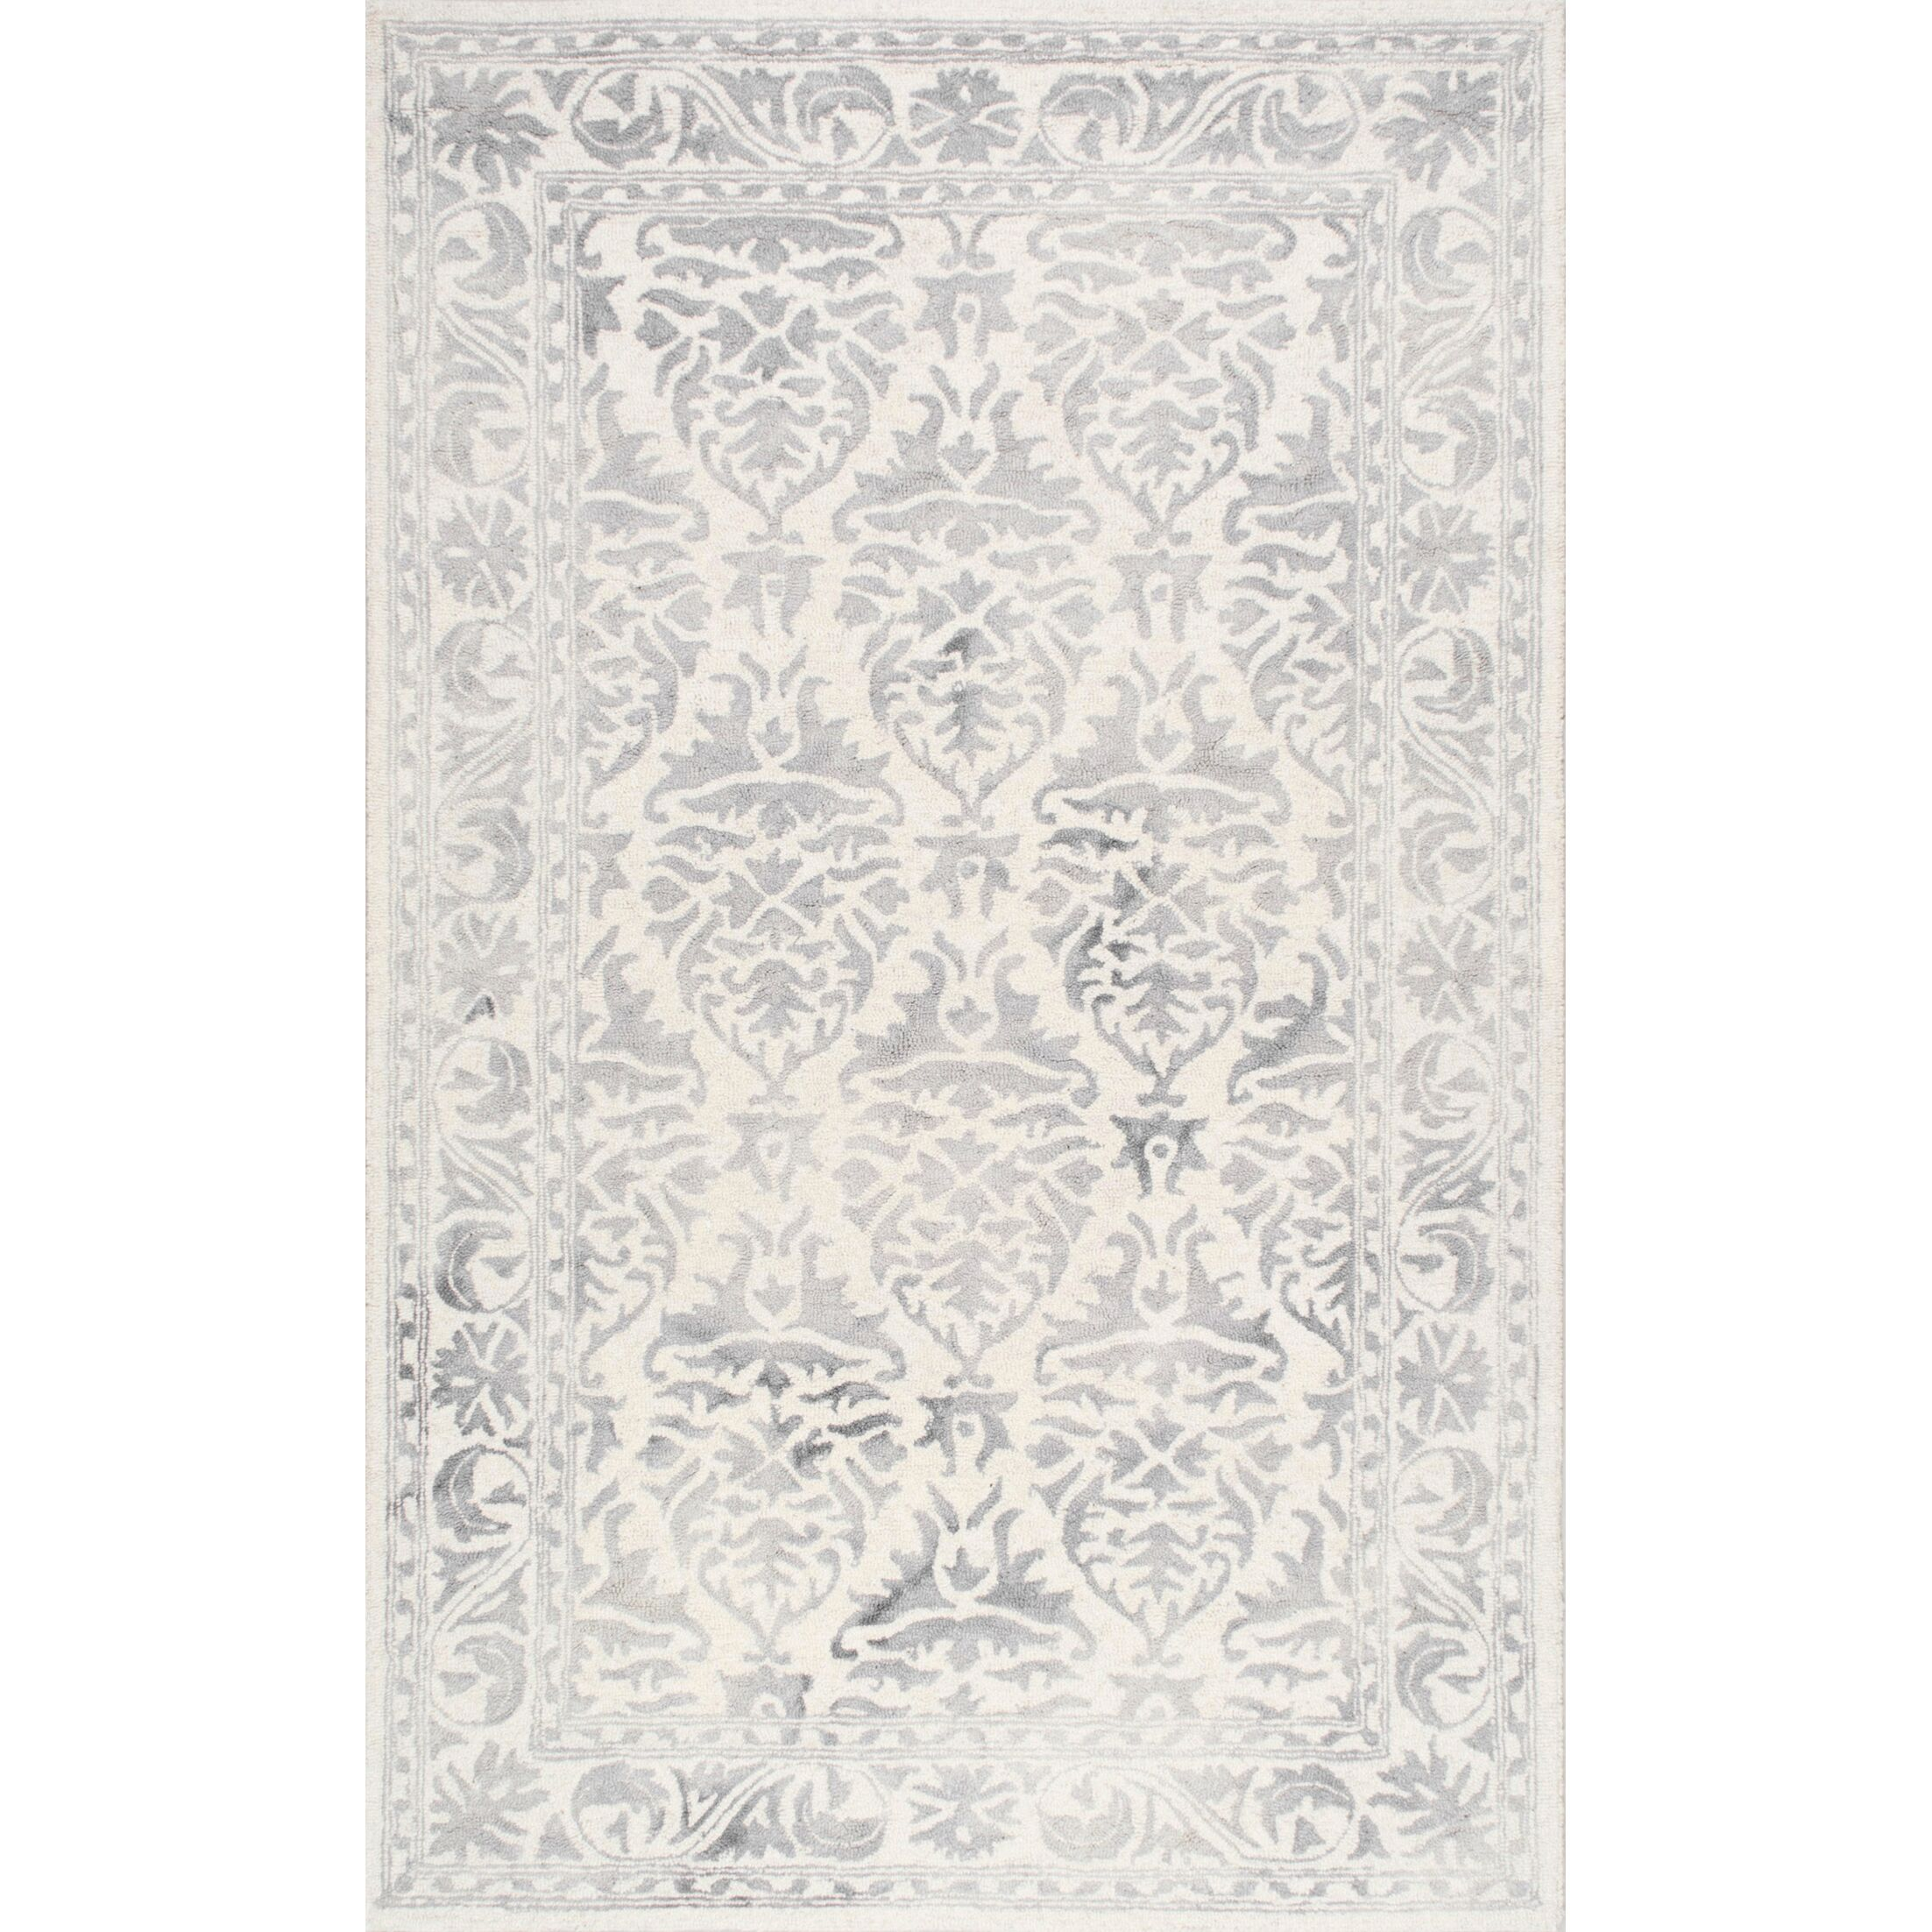 Mount Salem Hand-Woven Wool Light Gray Area Rug Rug Size: Rectangle 5' x 8'